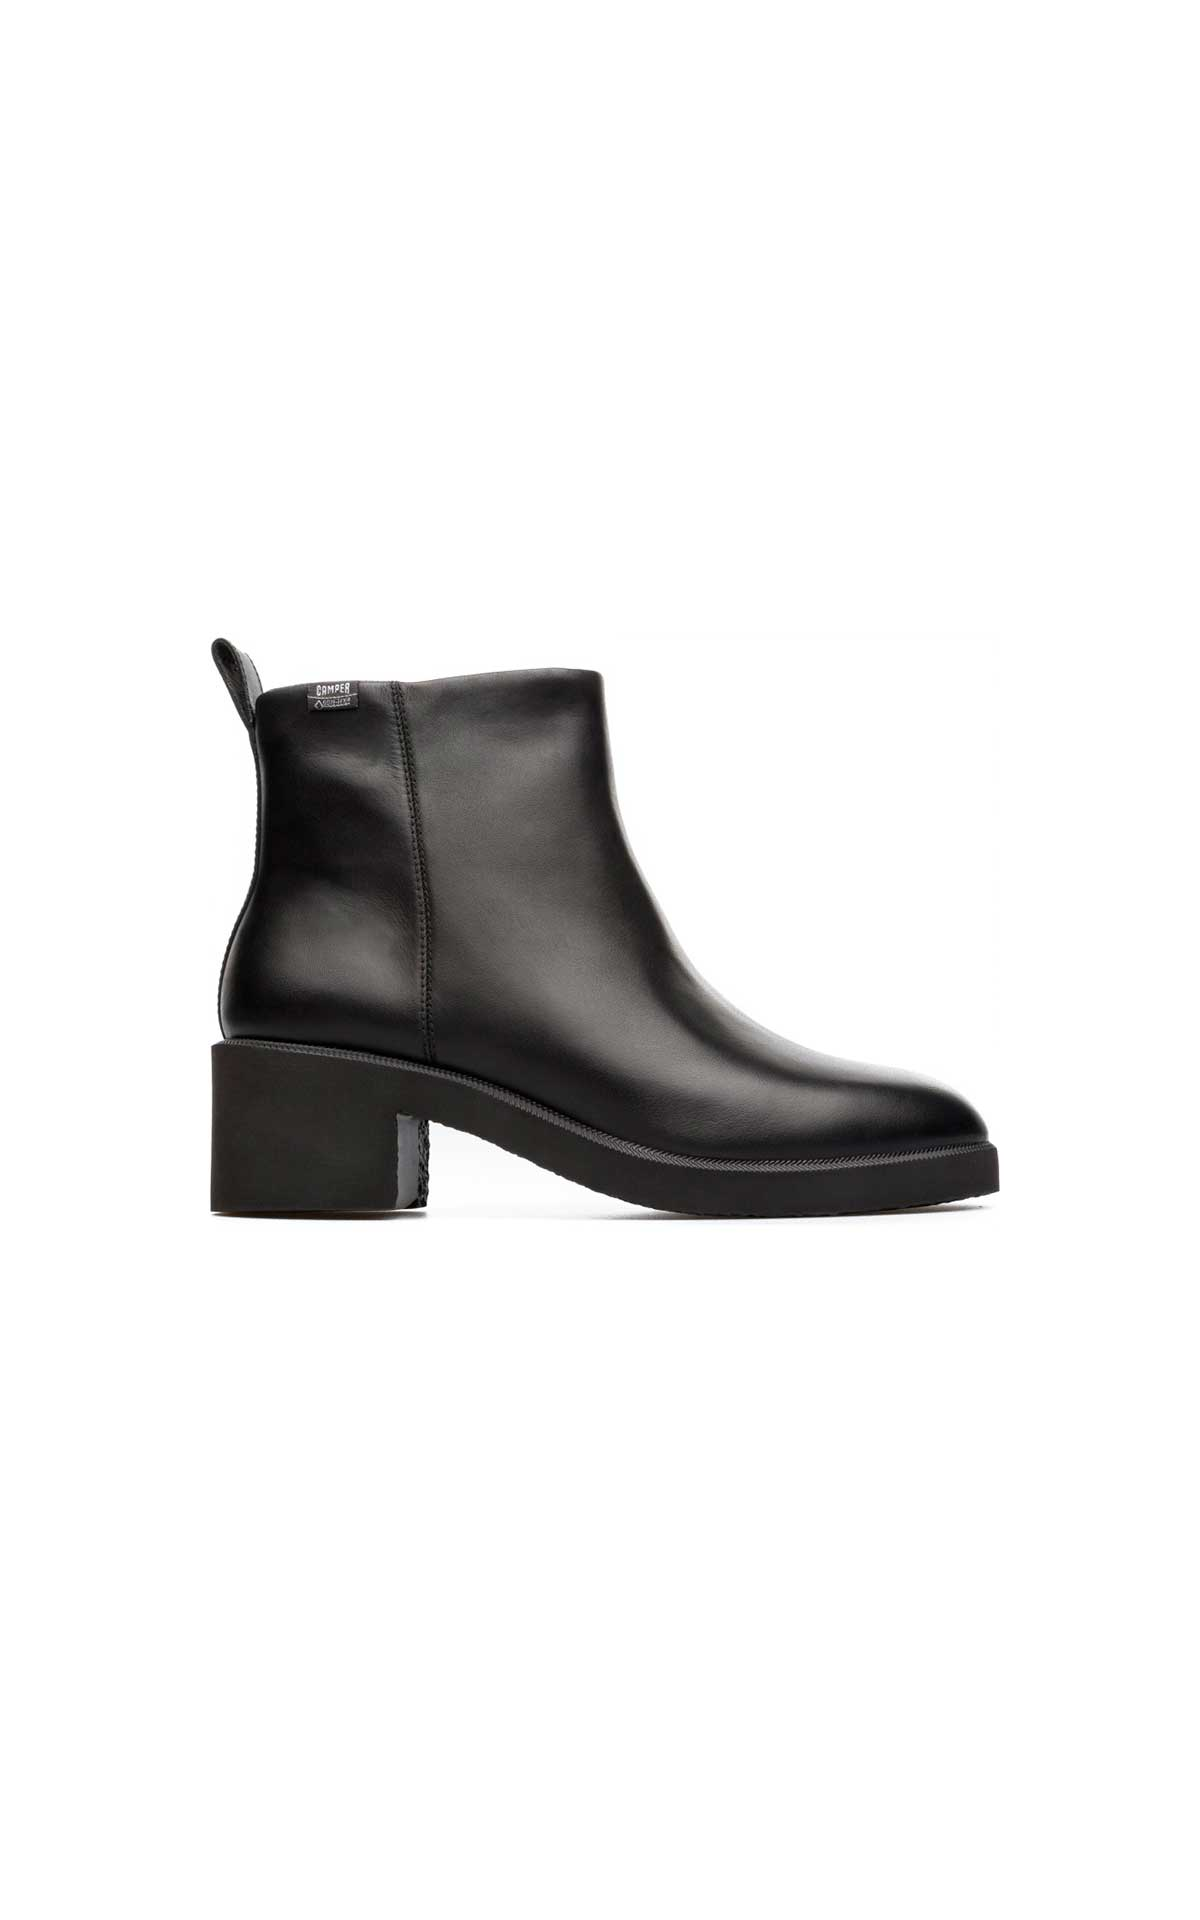 Black leather ankle boot Camper